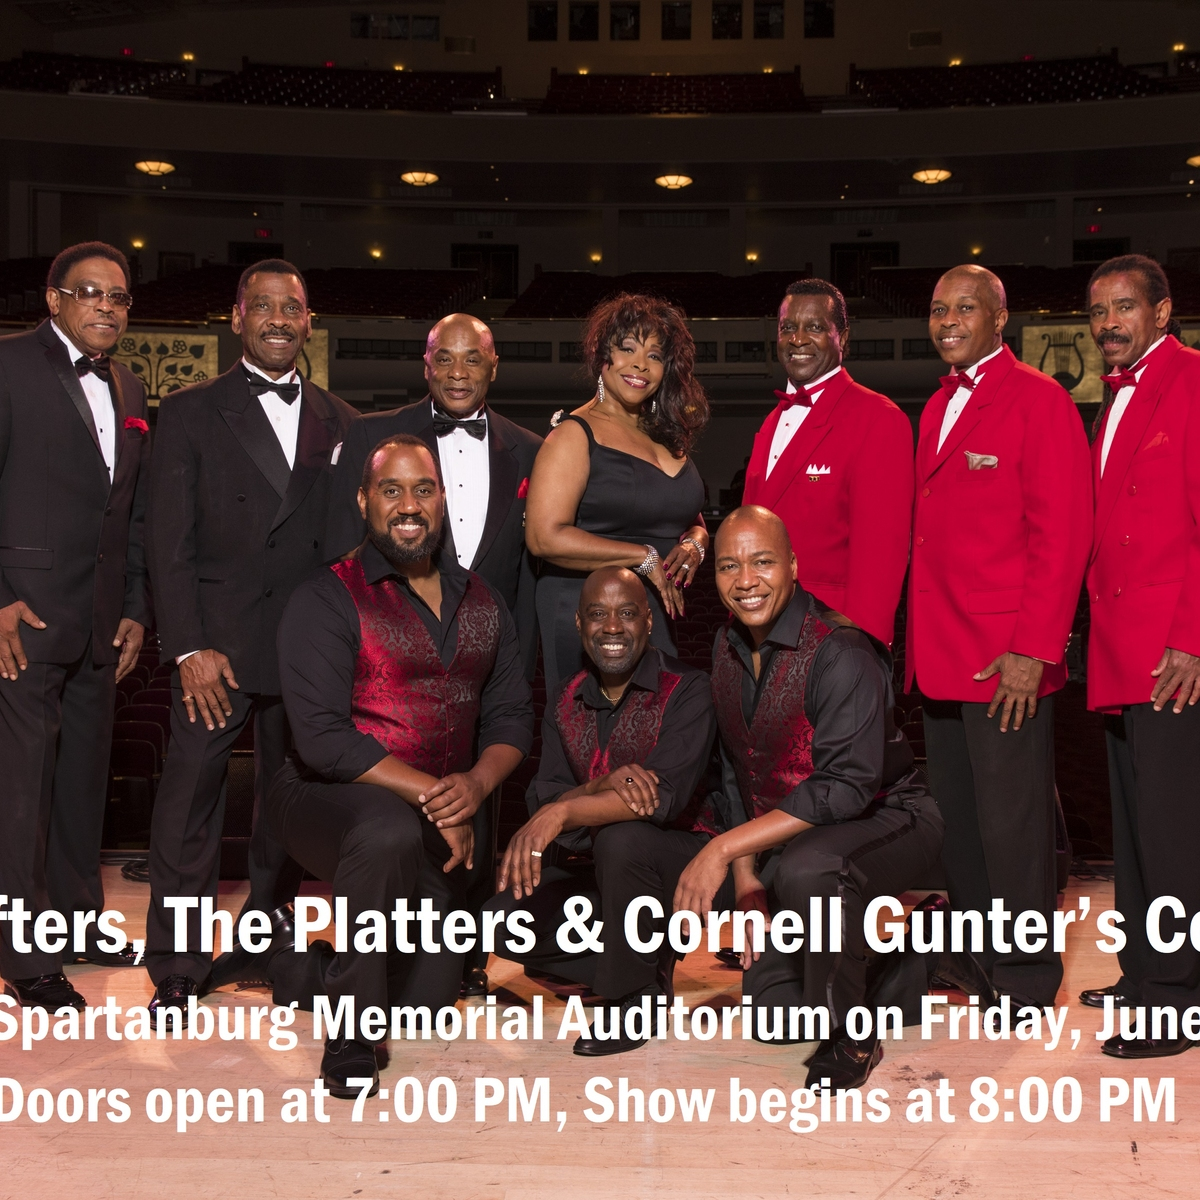 Rescheduled - The Drifters, The Platters & Cornell Gunter's Coasters - 6/11/2021